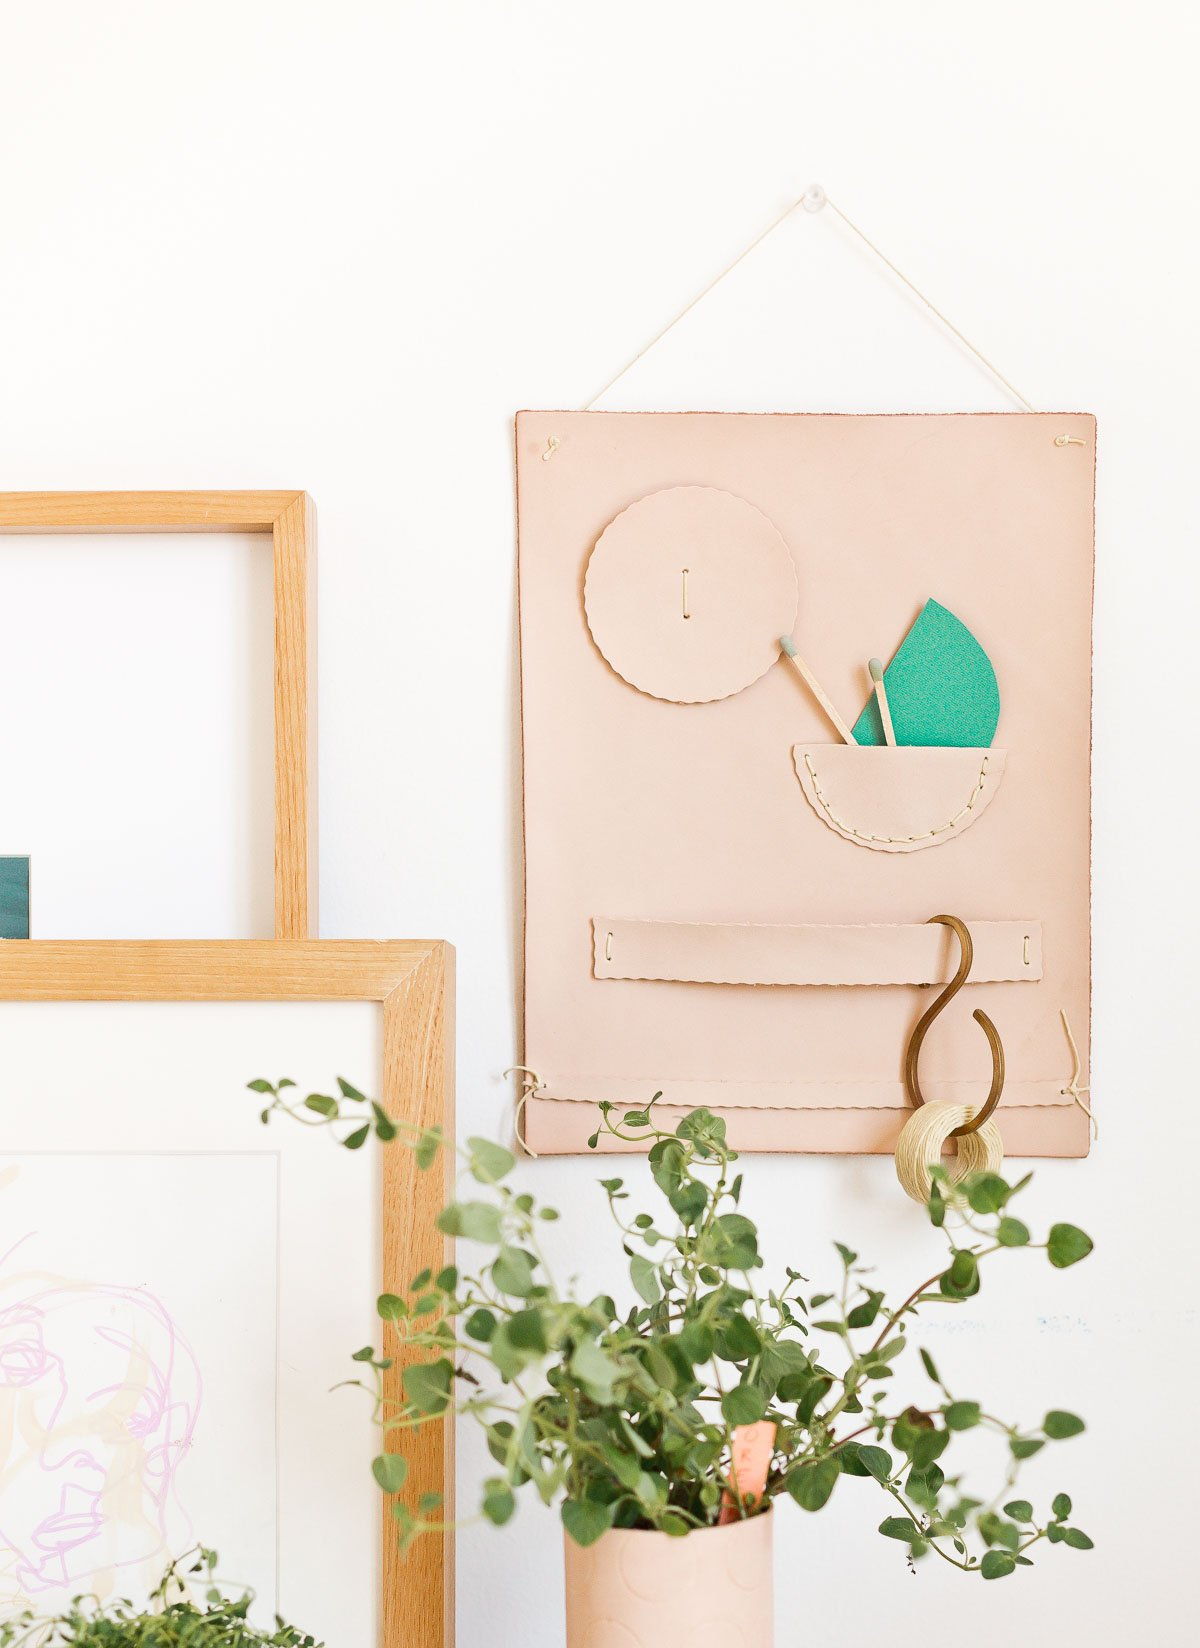 DIY Wall Organizer. Make a unique leather wall organizer for back to school and beyond. Great for all workspace (or craft space). #diy #leatherdiy #organizer #wallorganizer #backtoschool #diynotebook #leather